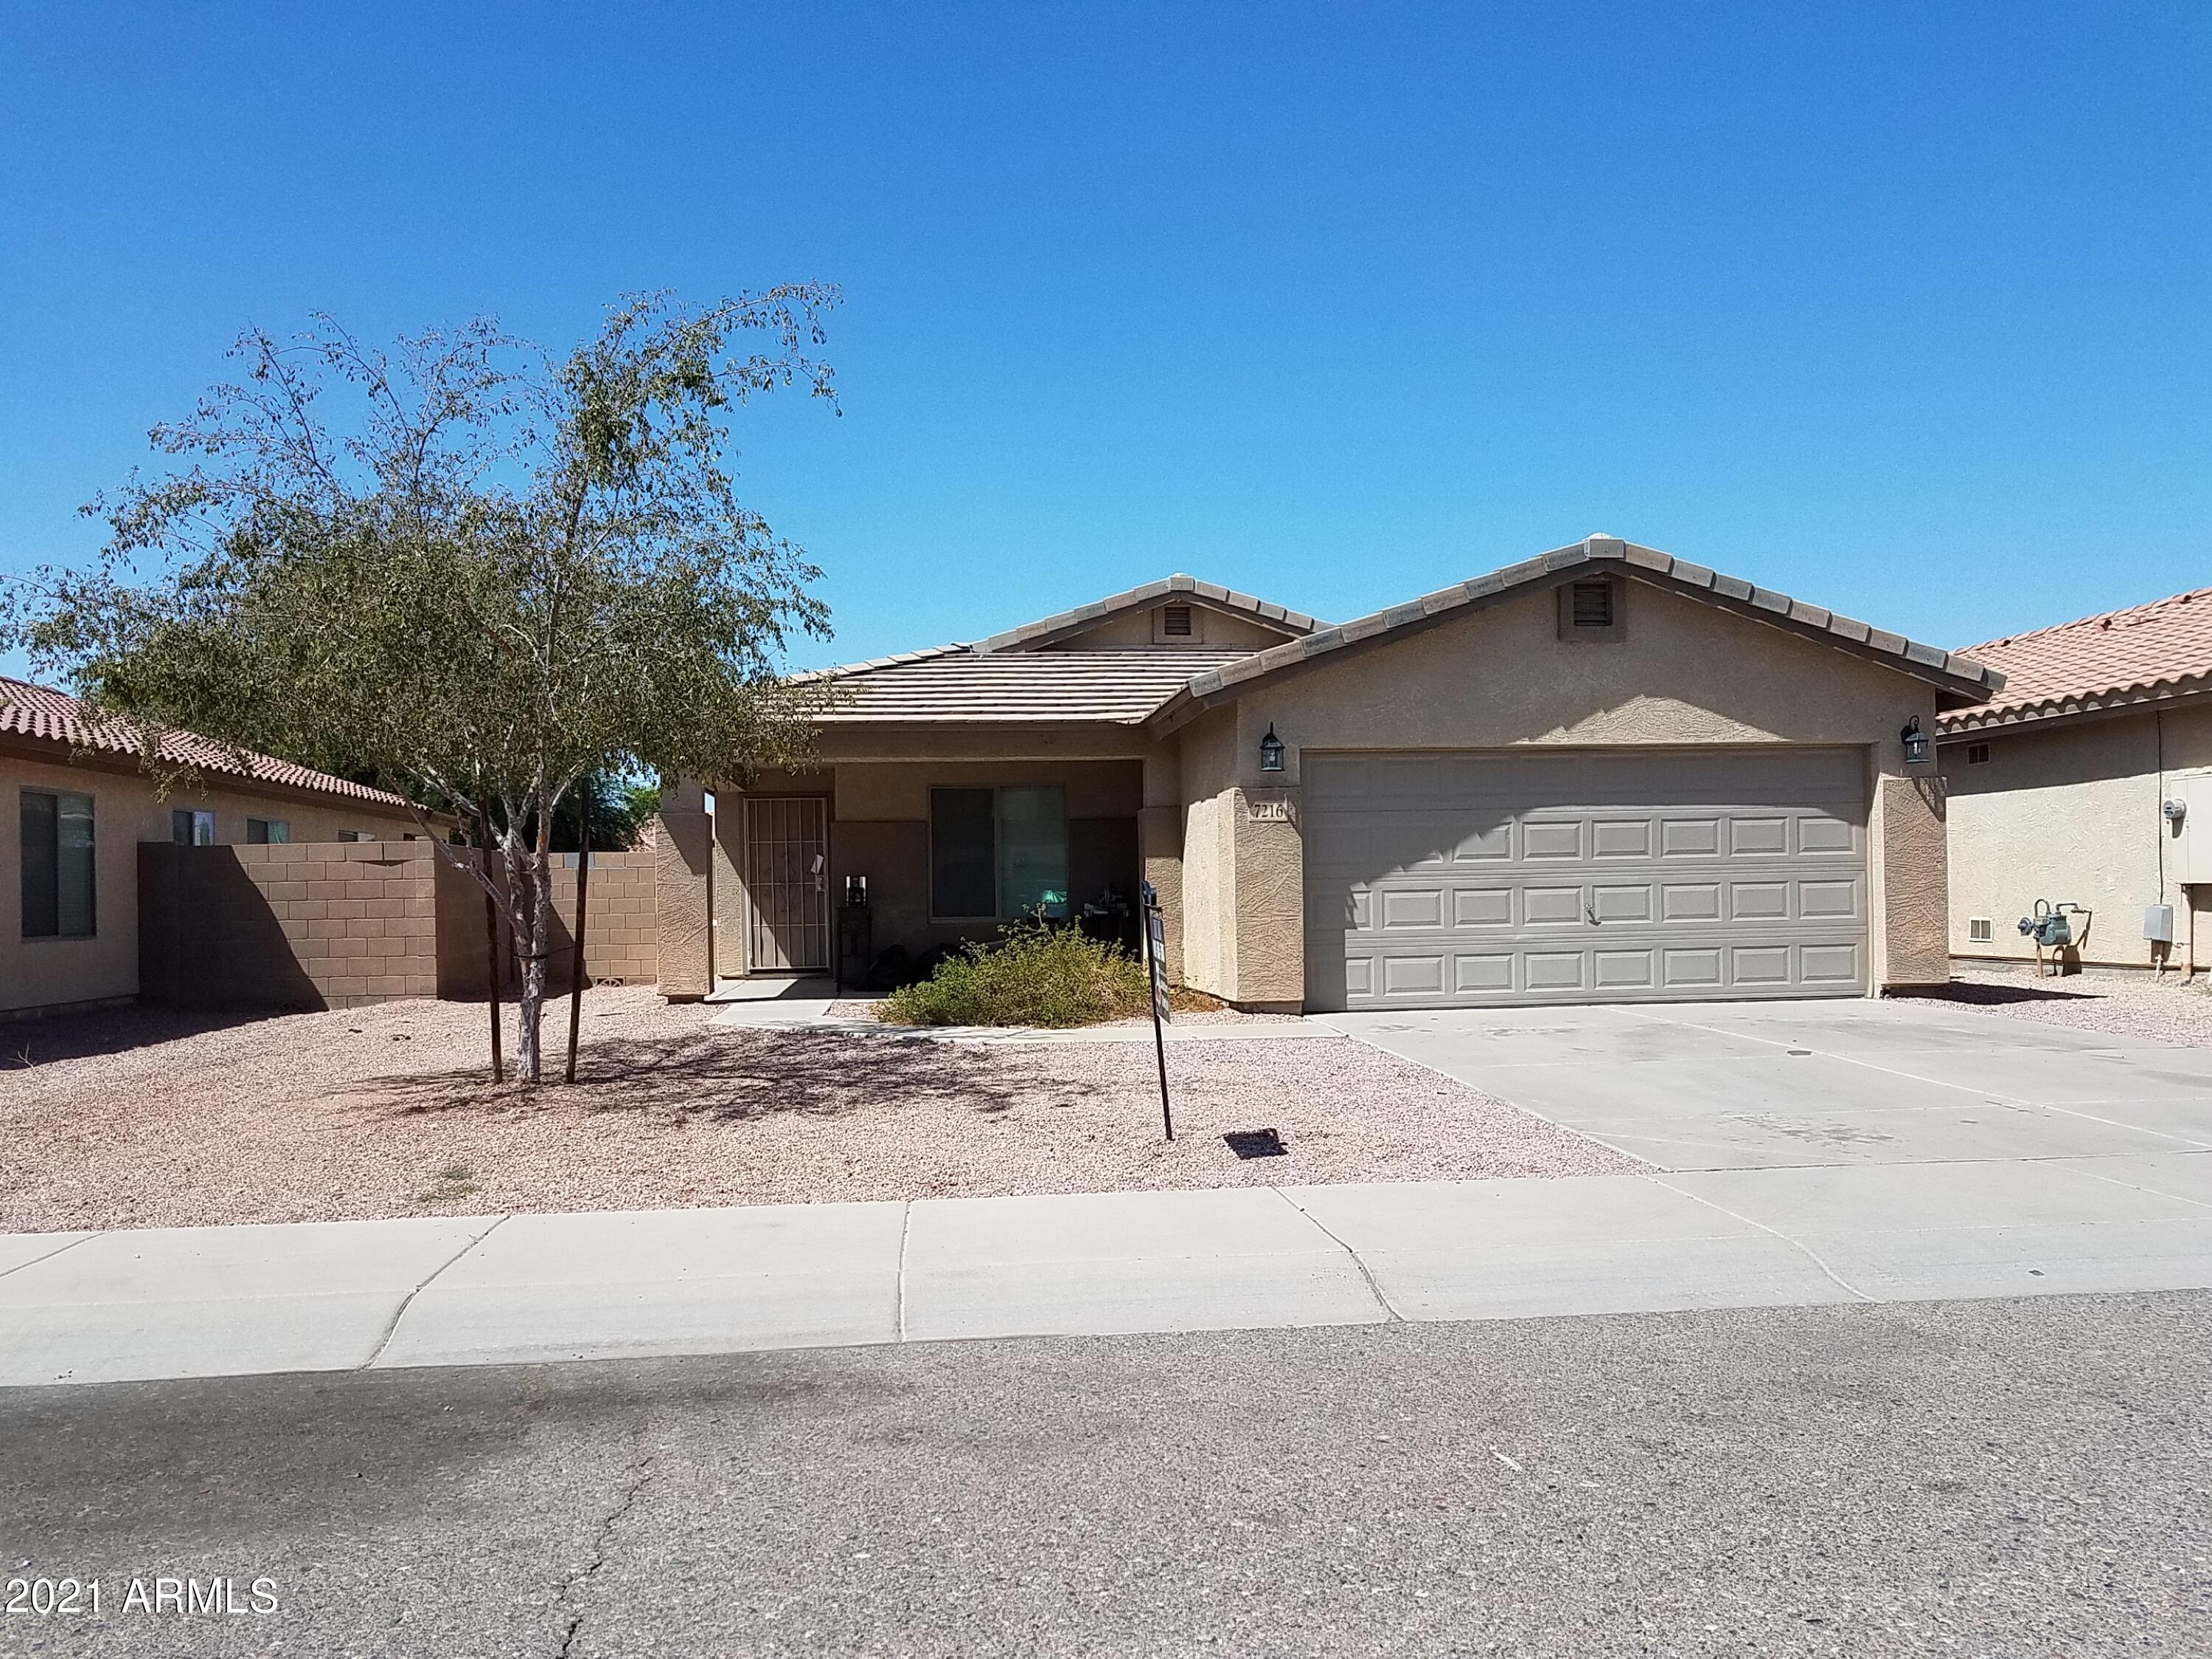 7216 55TH Drive, Laveen, Arizona 85339, 3 Bedrooms Bedrooms, ,2 BathroomsBathrooms,Residential Rental,For Rent,55TH,6255621